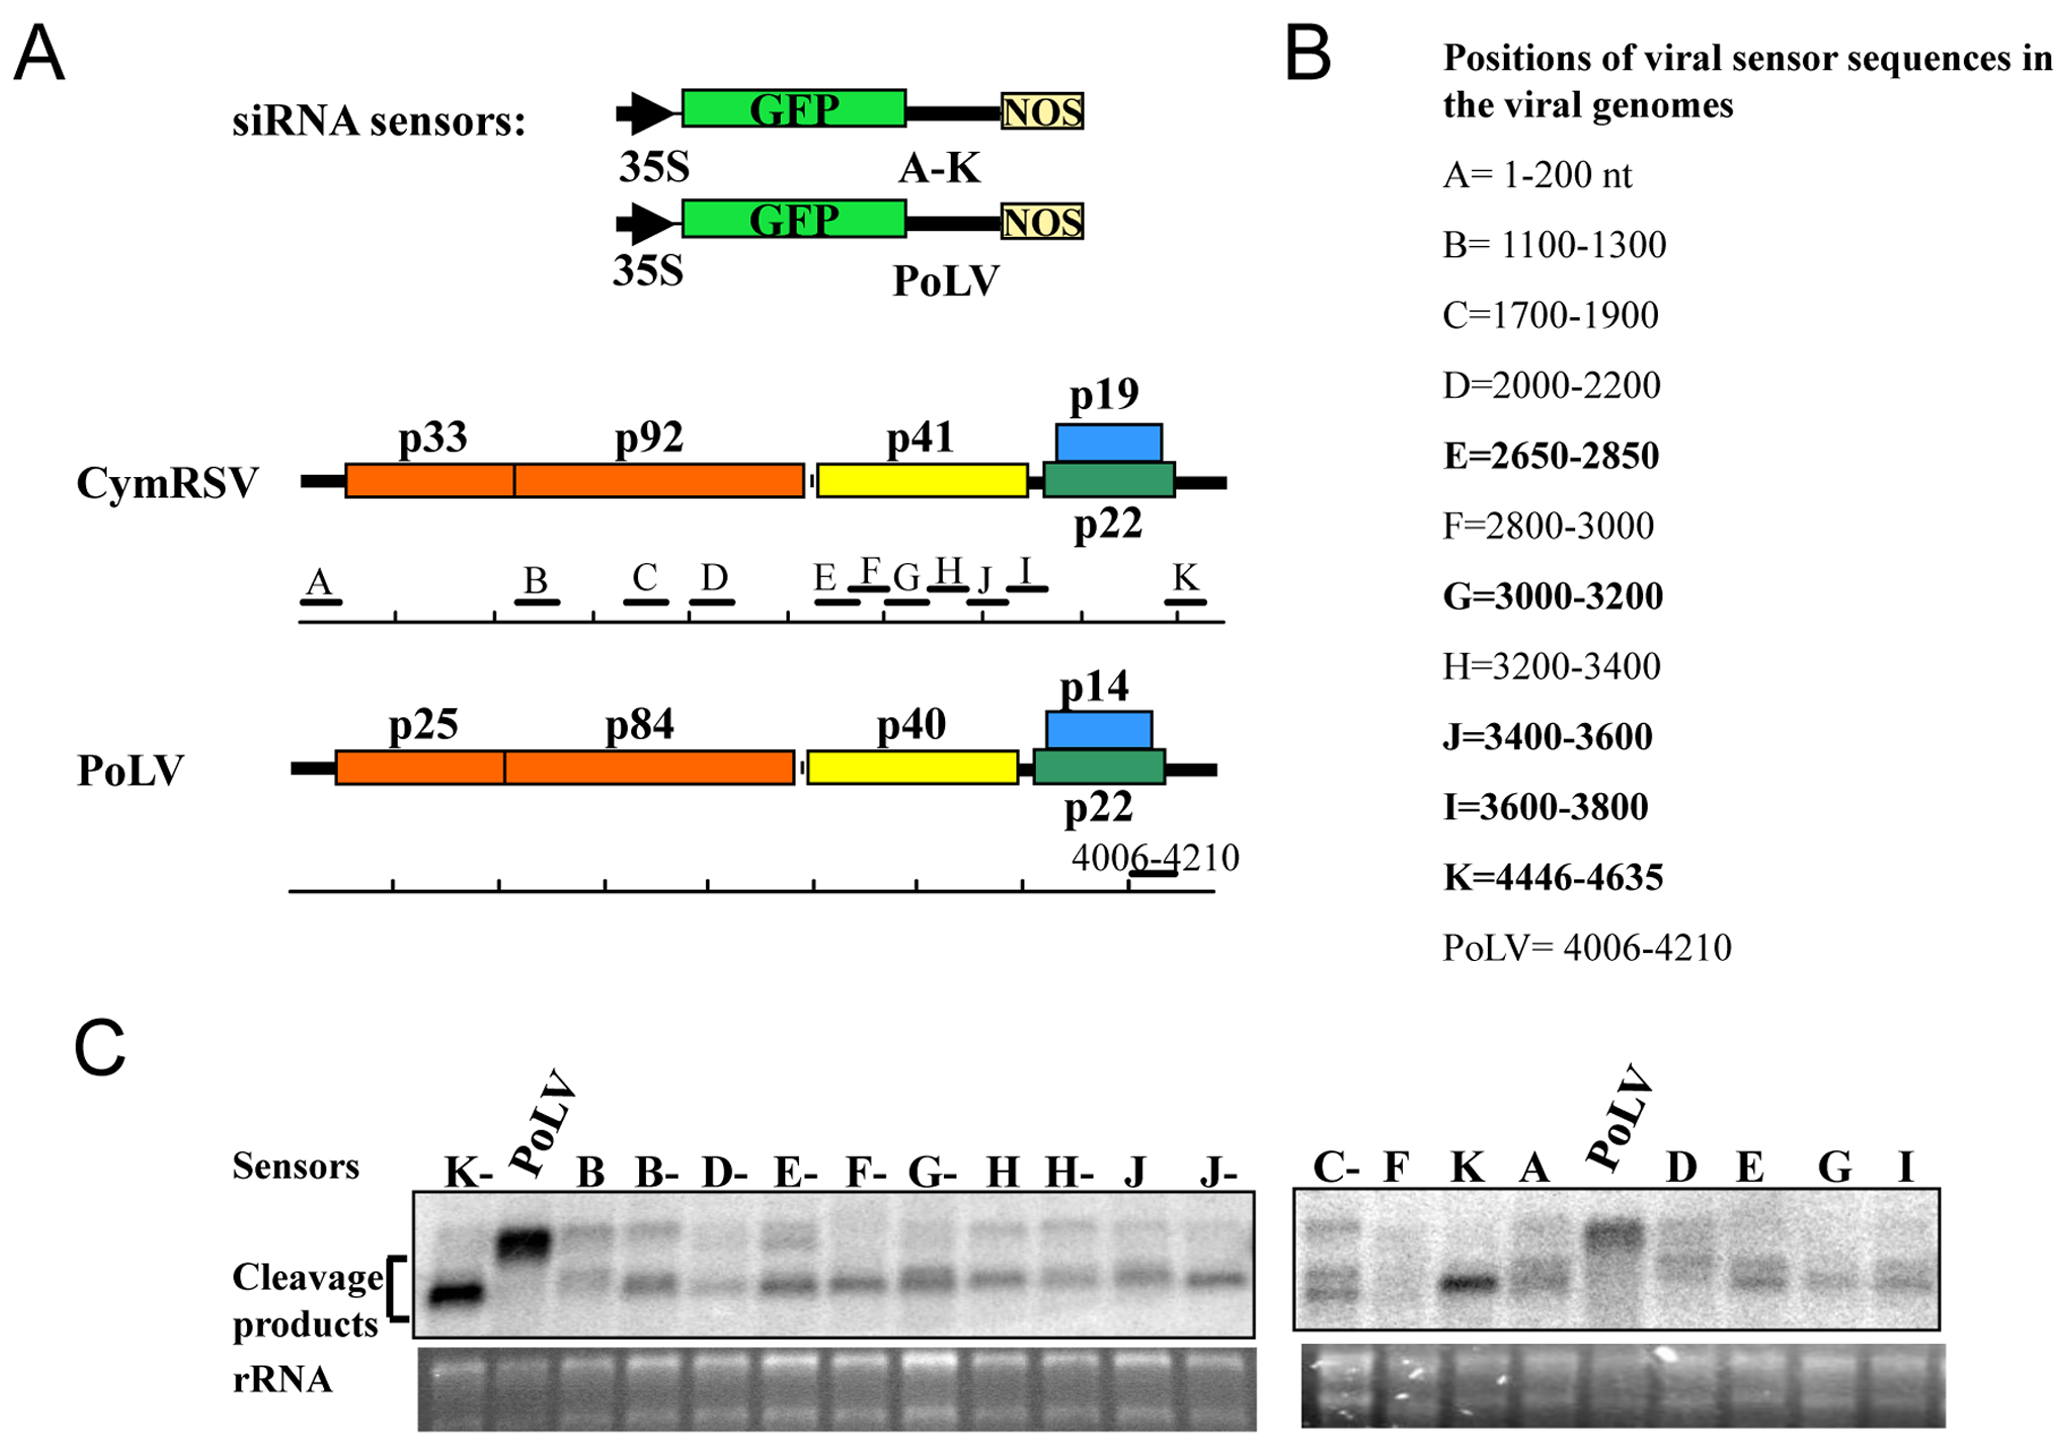 Functional analysis of vsiRNAs <i>in planta</i>.